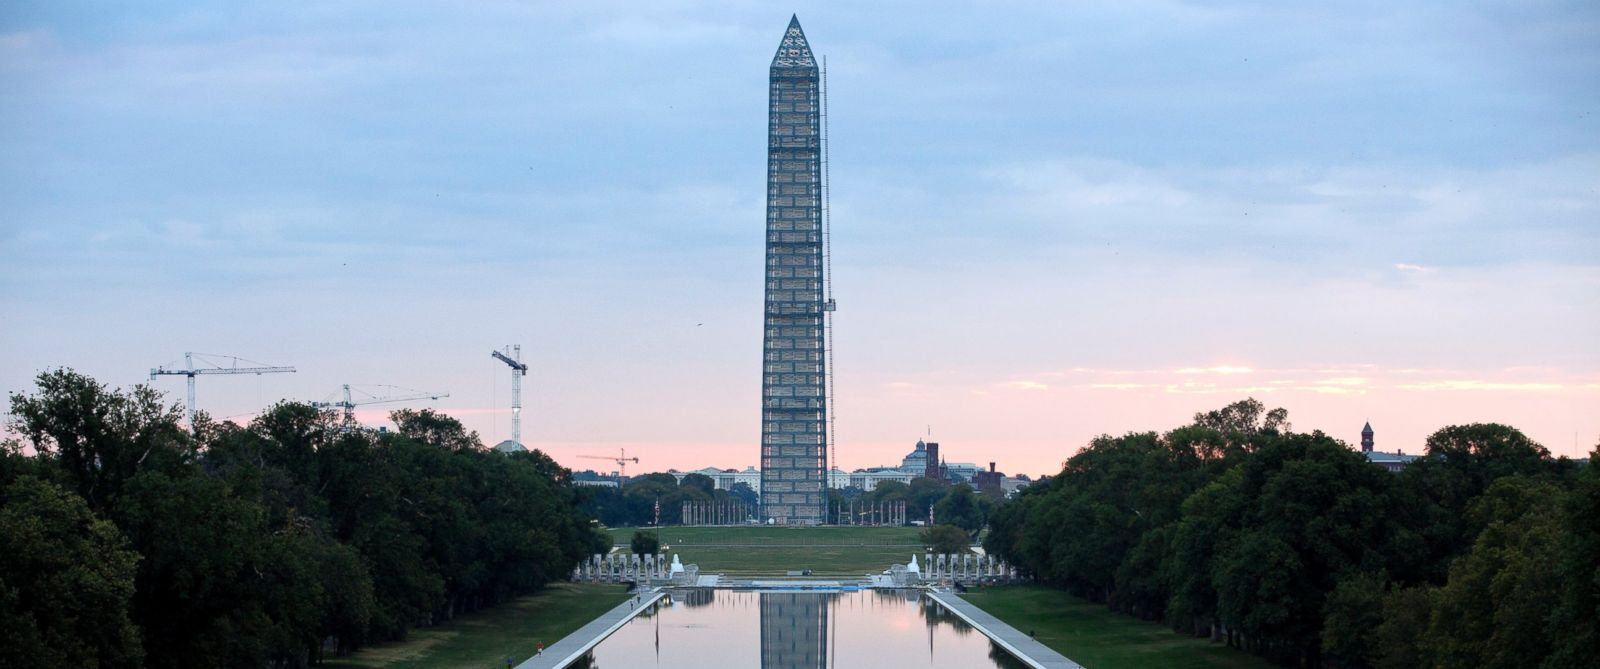 10 Facts About The Washington Monument As It Reopens Abc